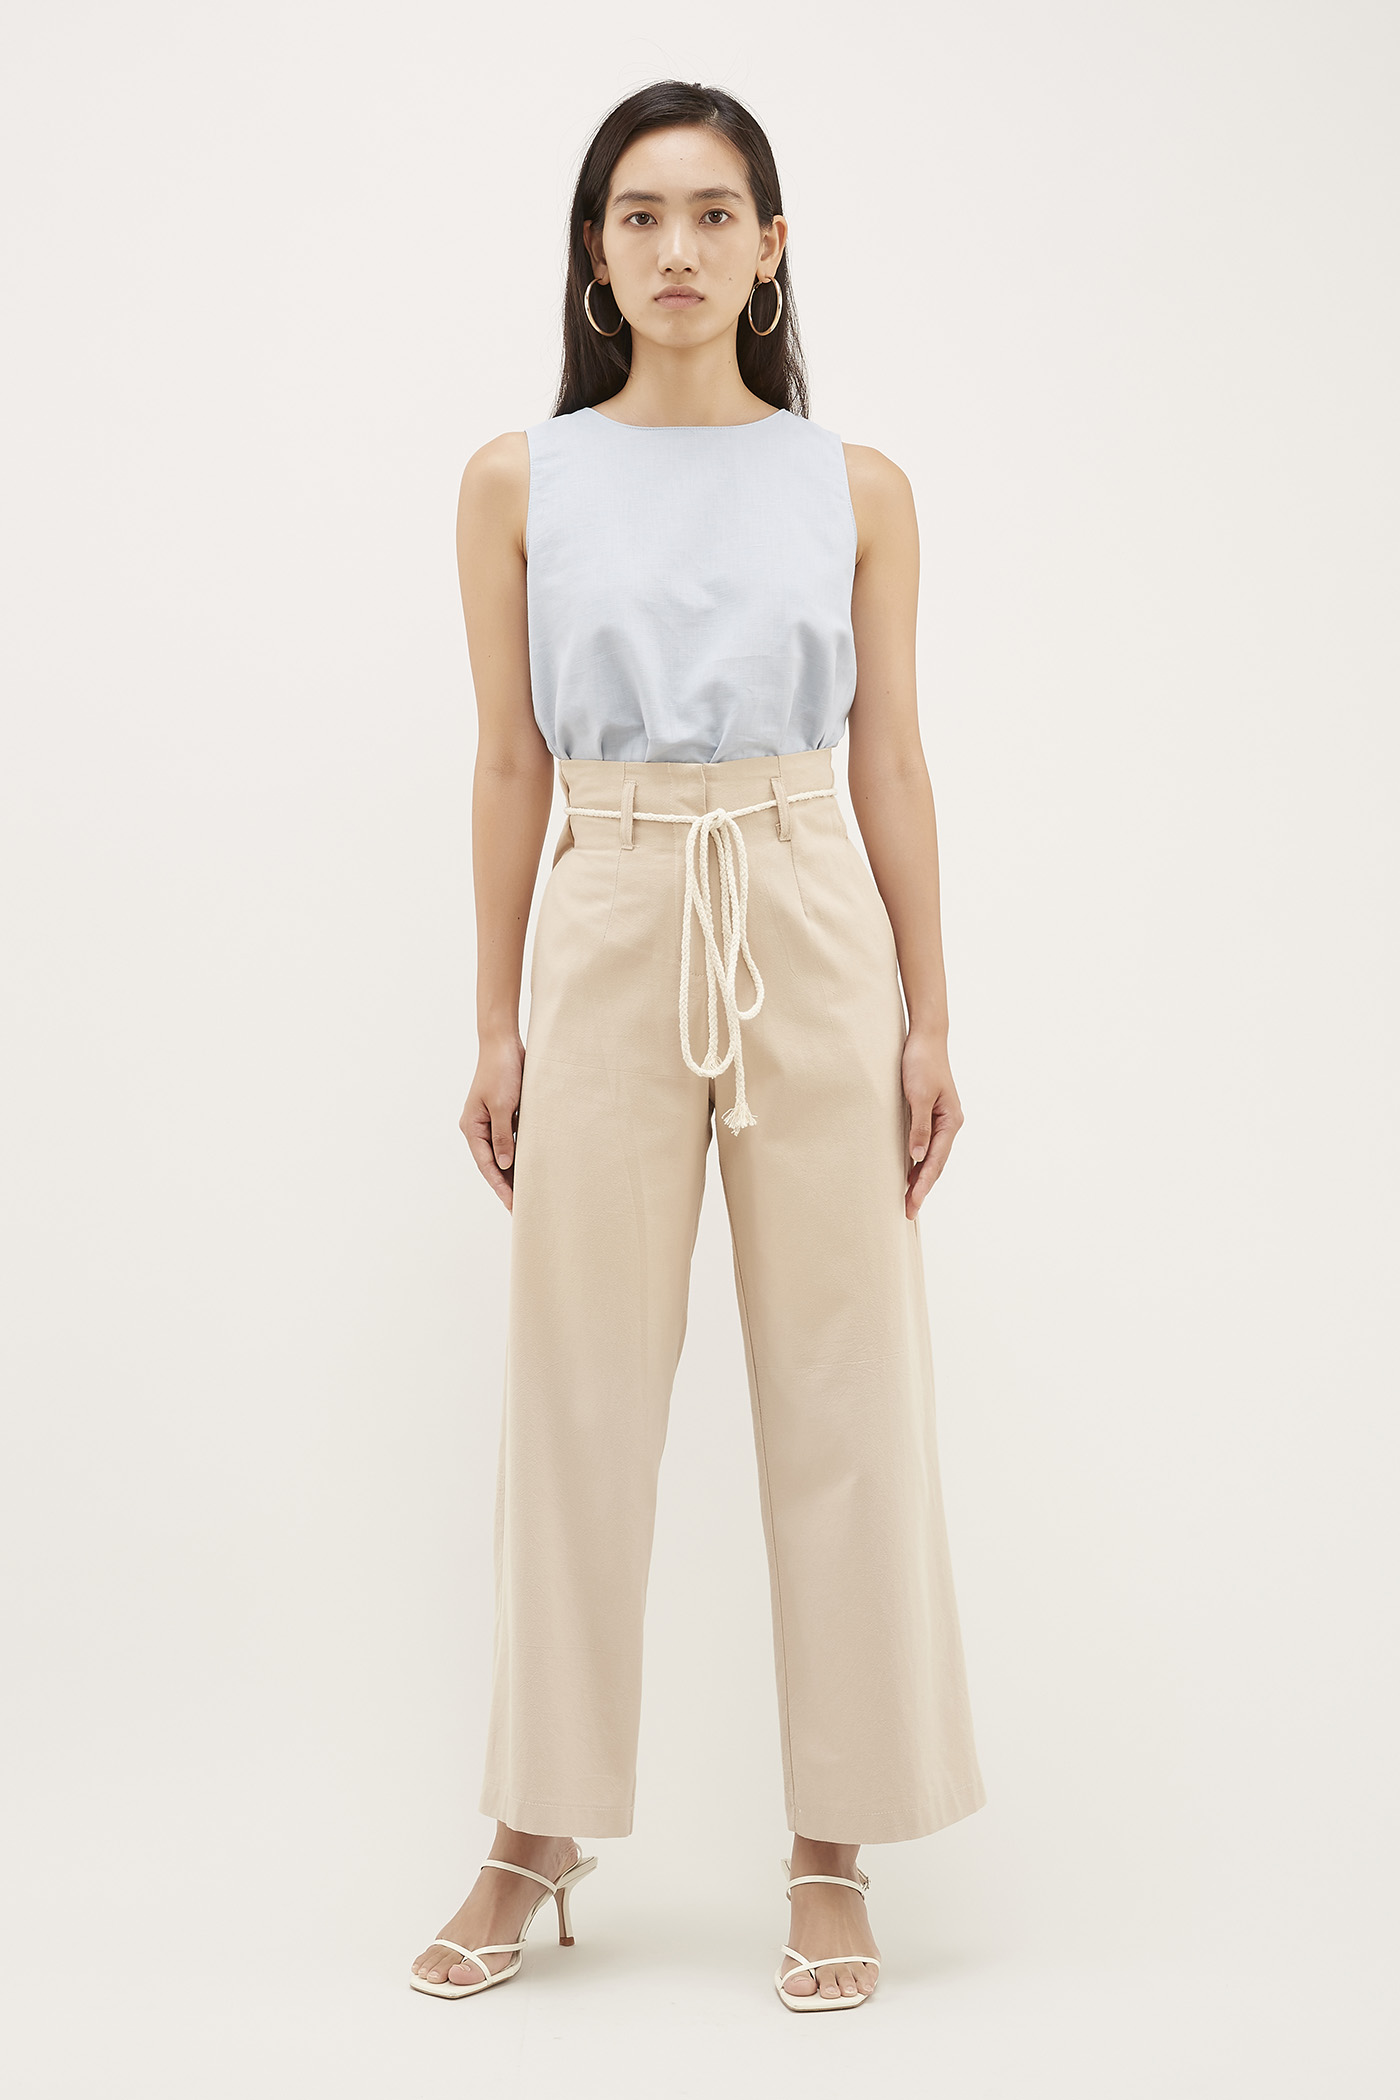 Kenyon Rope-tie Pants